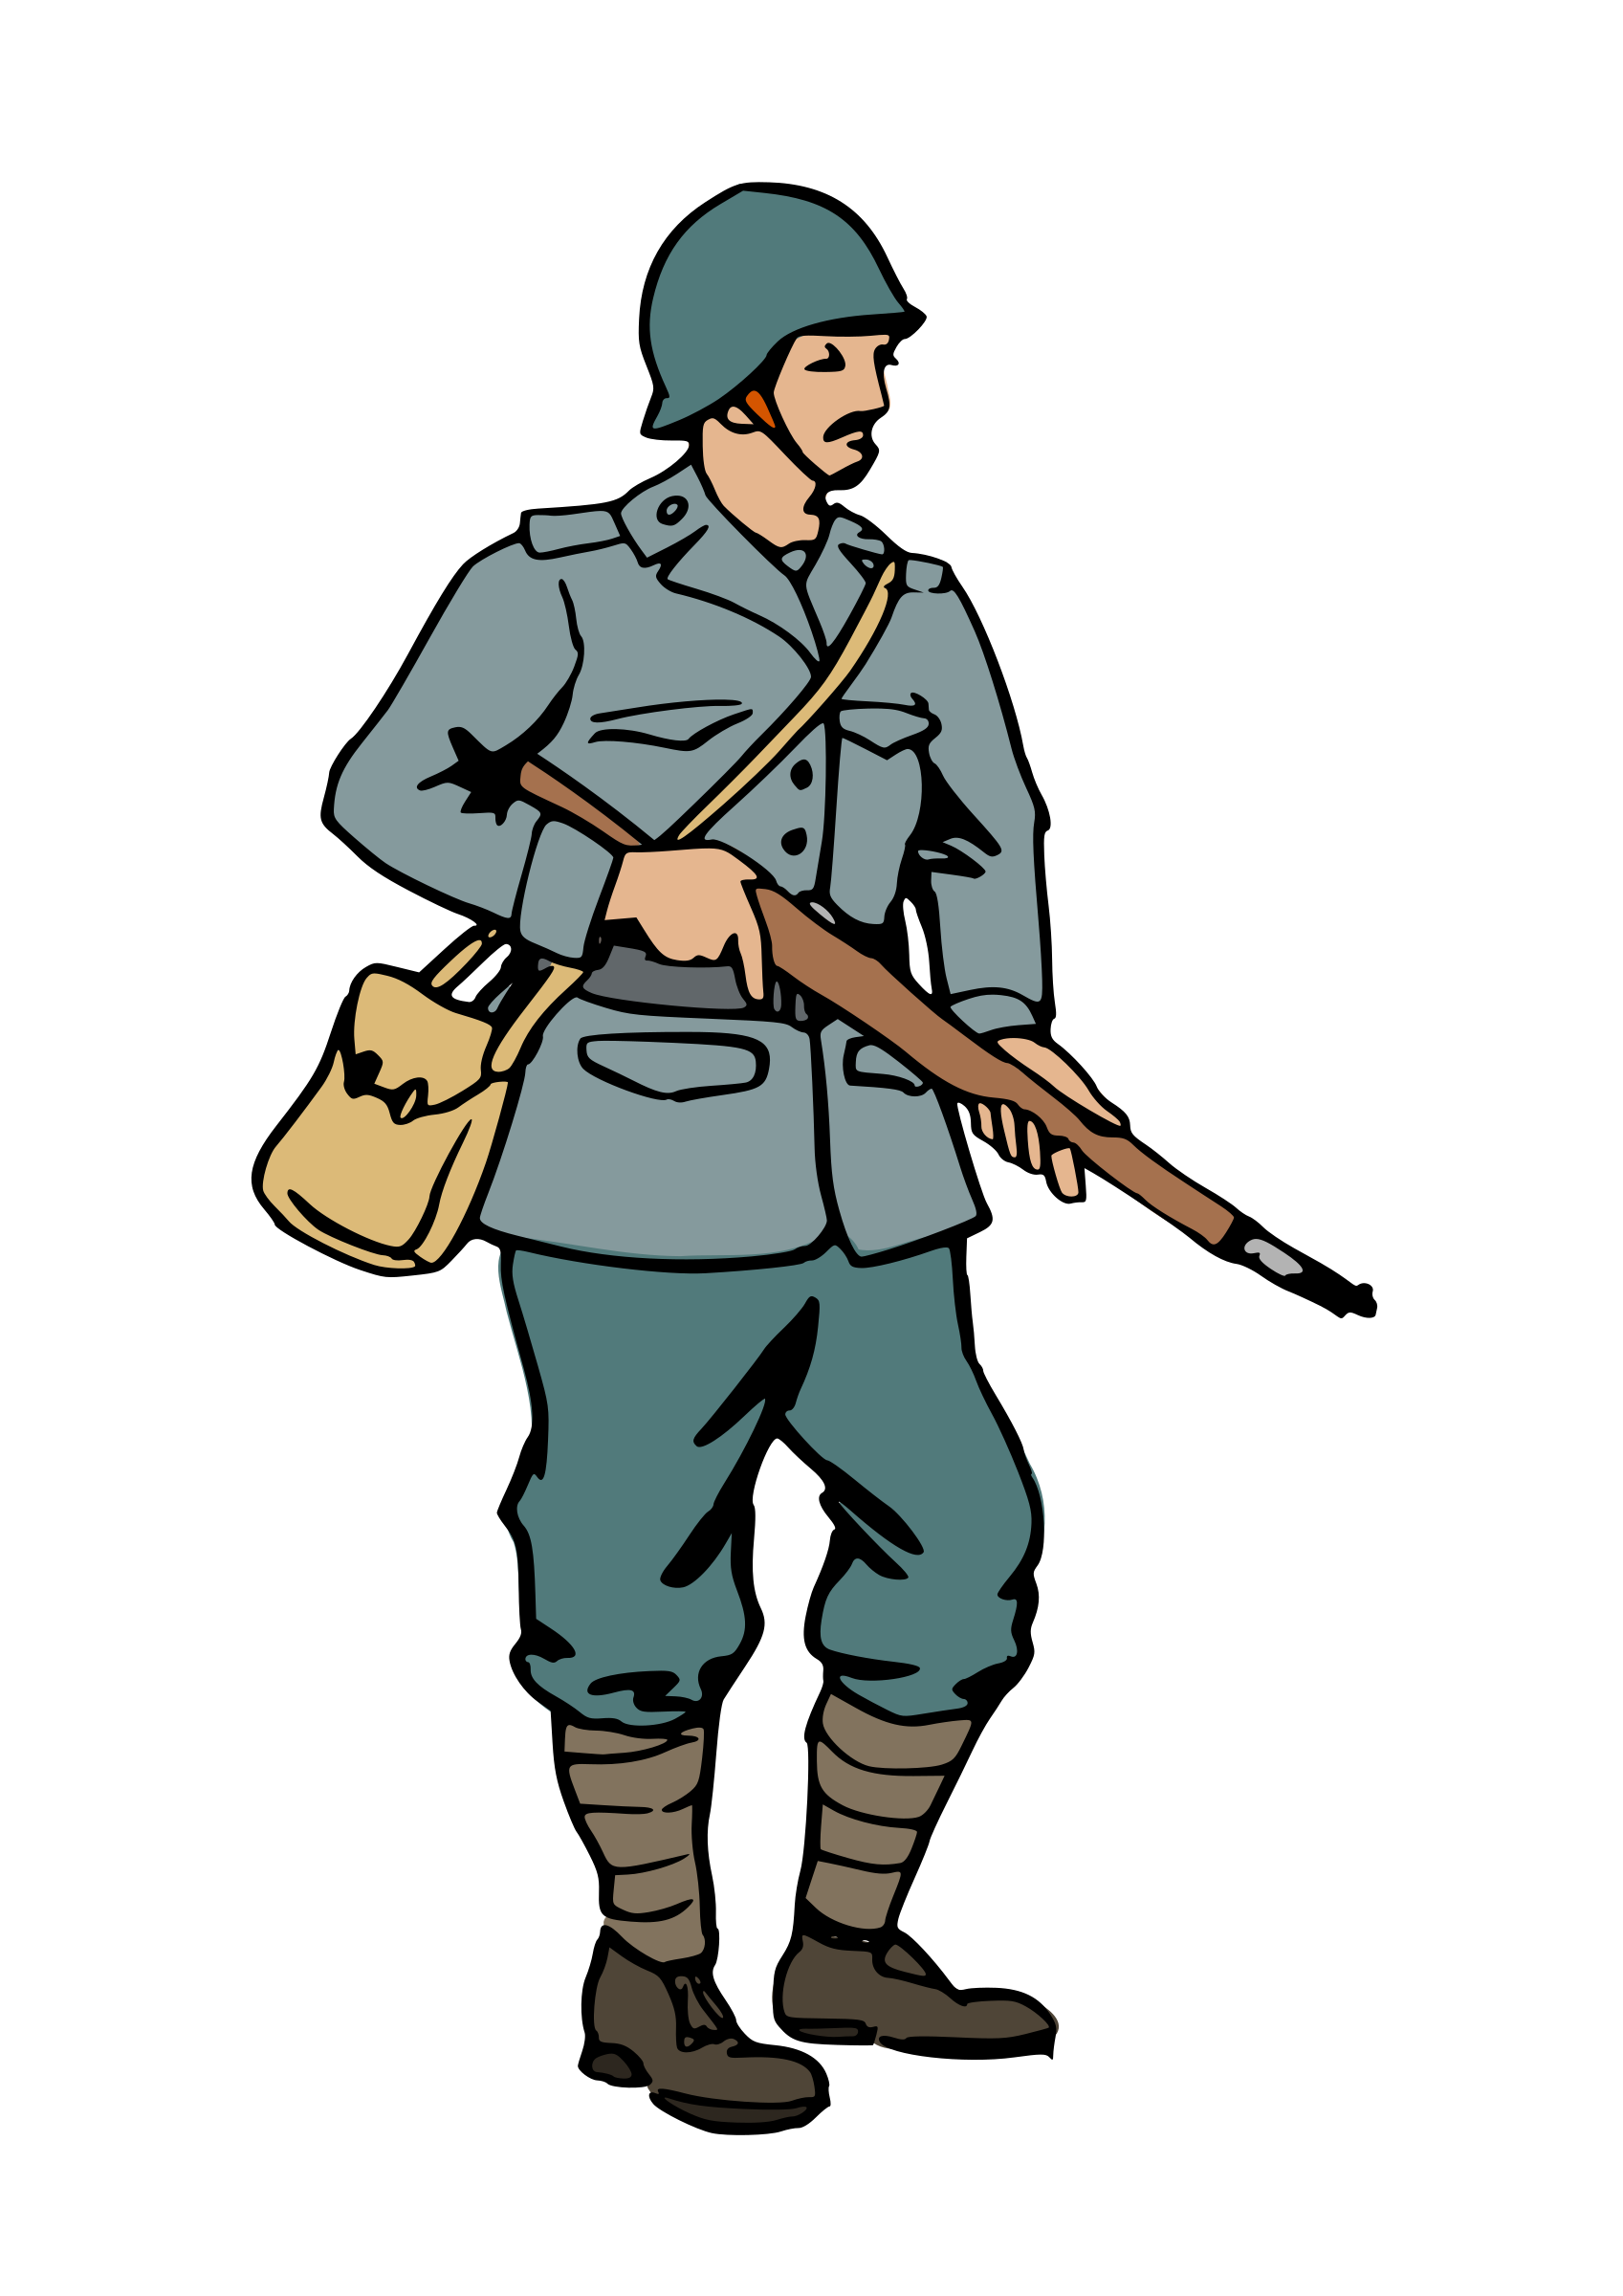 Us clipart soldier soldier. Ww silhouette at getdrawings